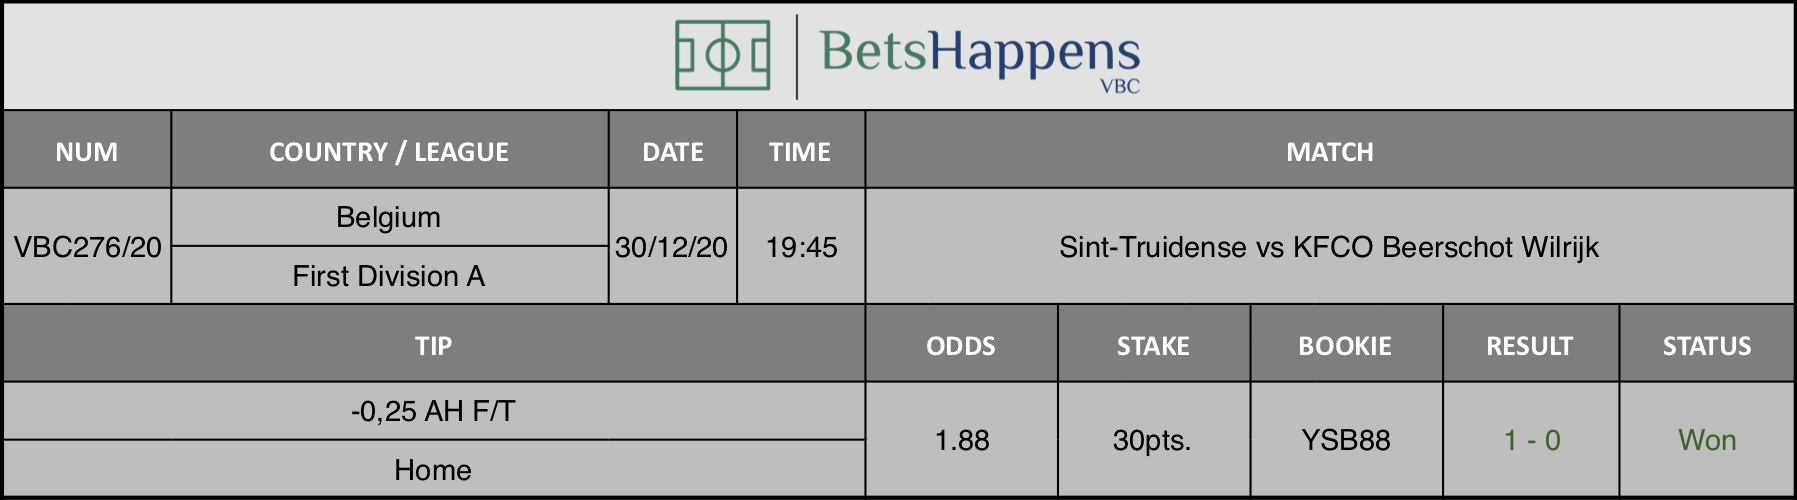 Results of our tip for the Sint-Truidense vs KFCO Beerschot Wilrijk match where -0,25 AH F/T Home is recommended.